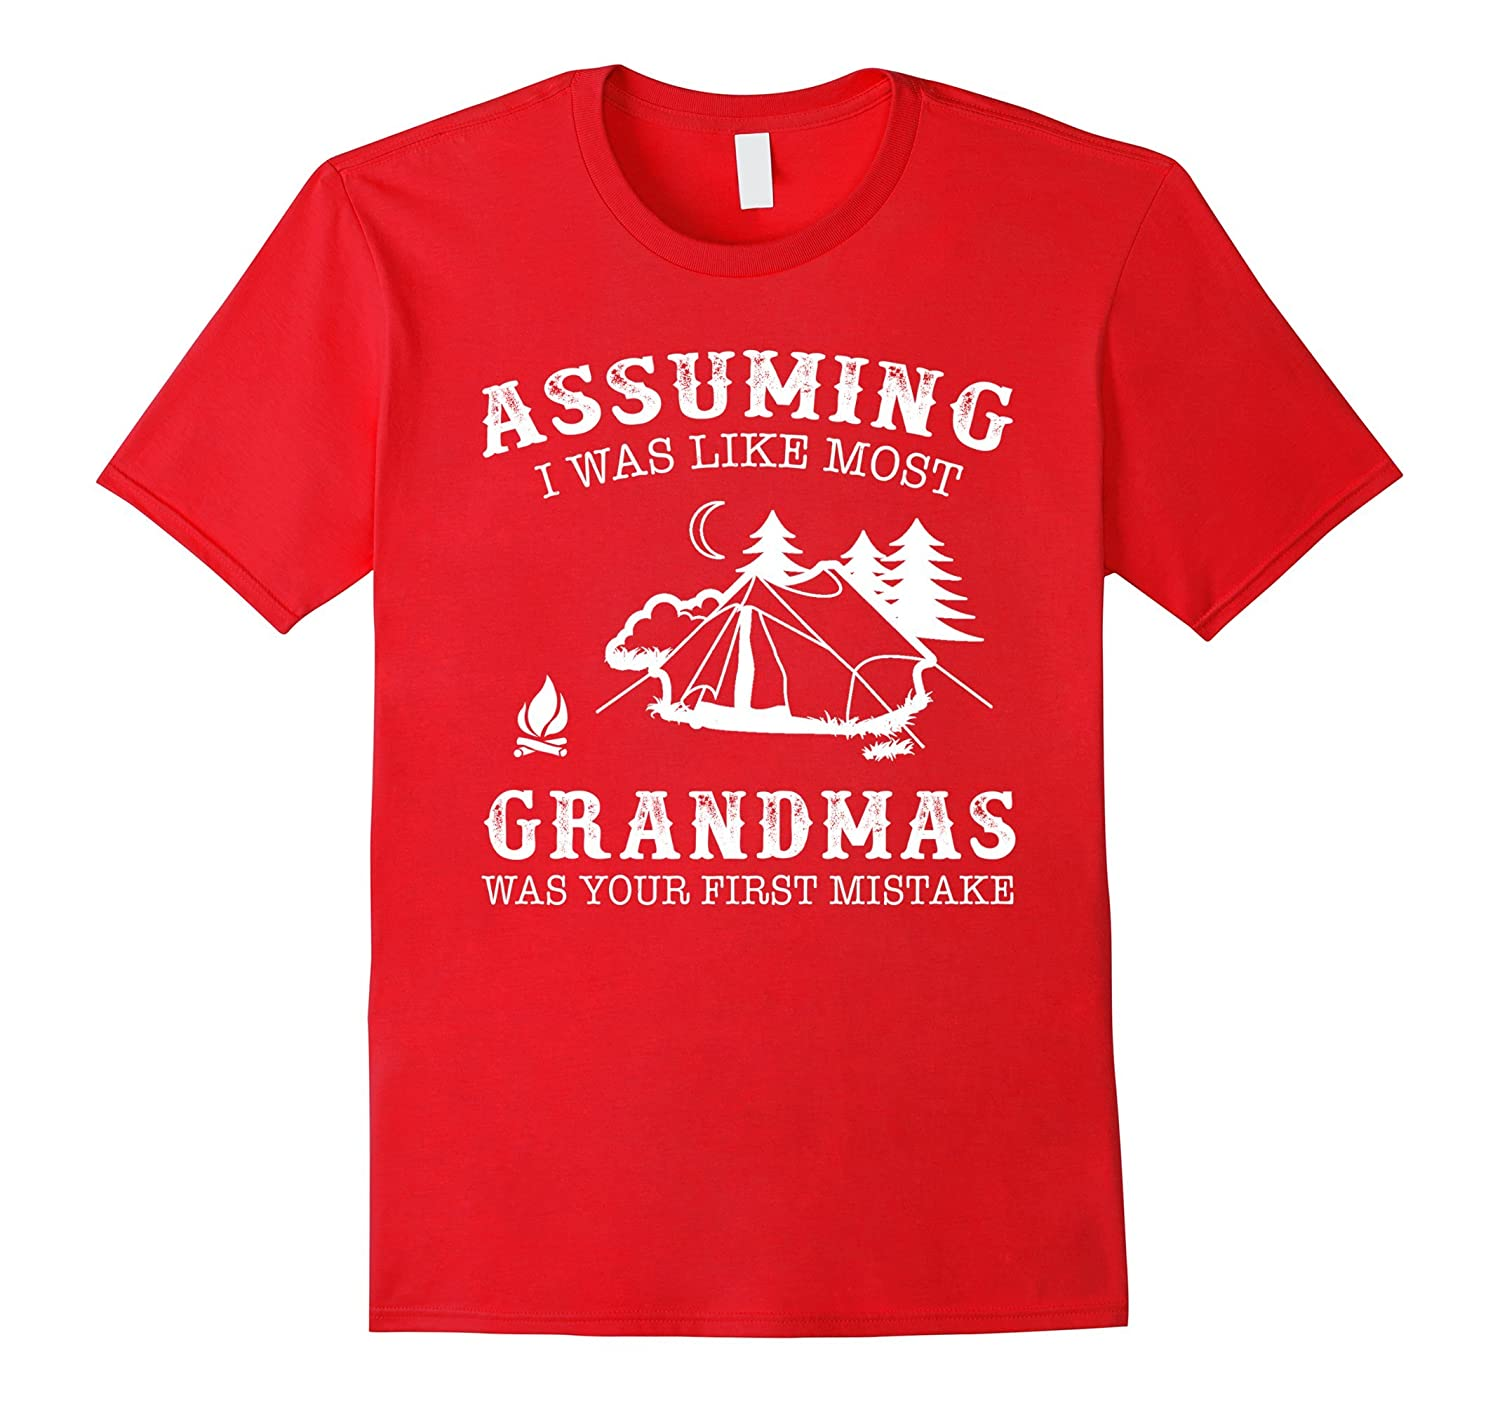 Assuming i was like most grandmas was first mistake Camping-CD